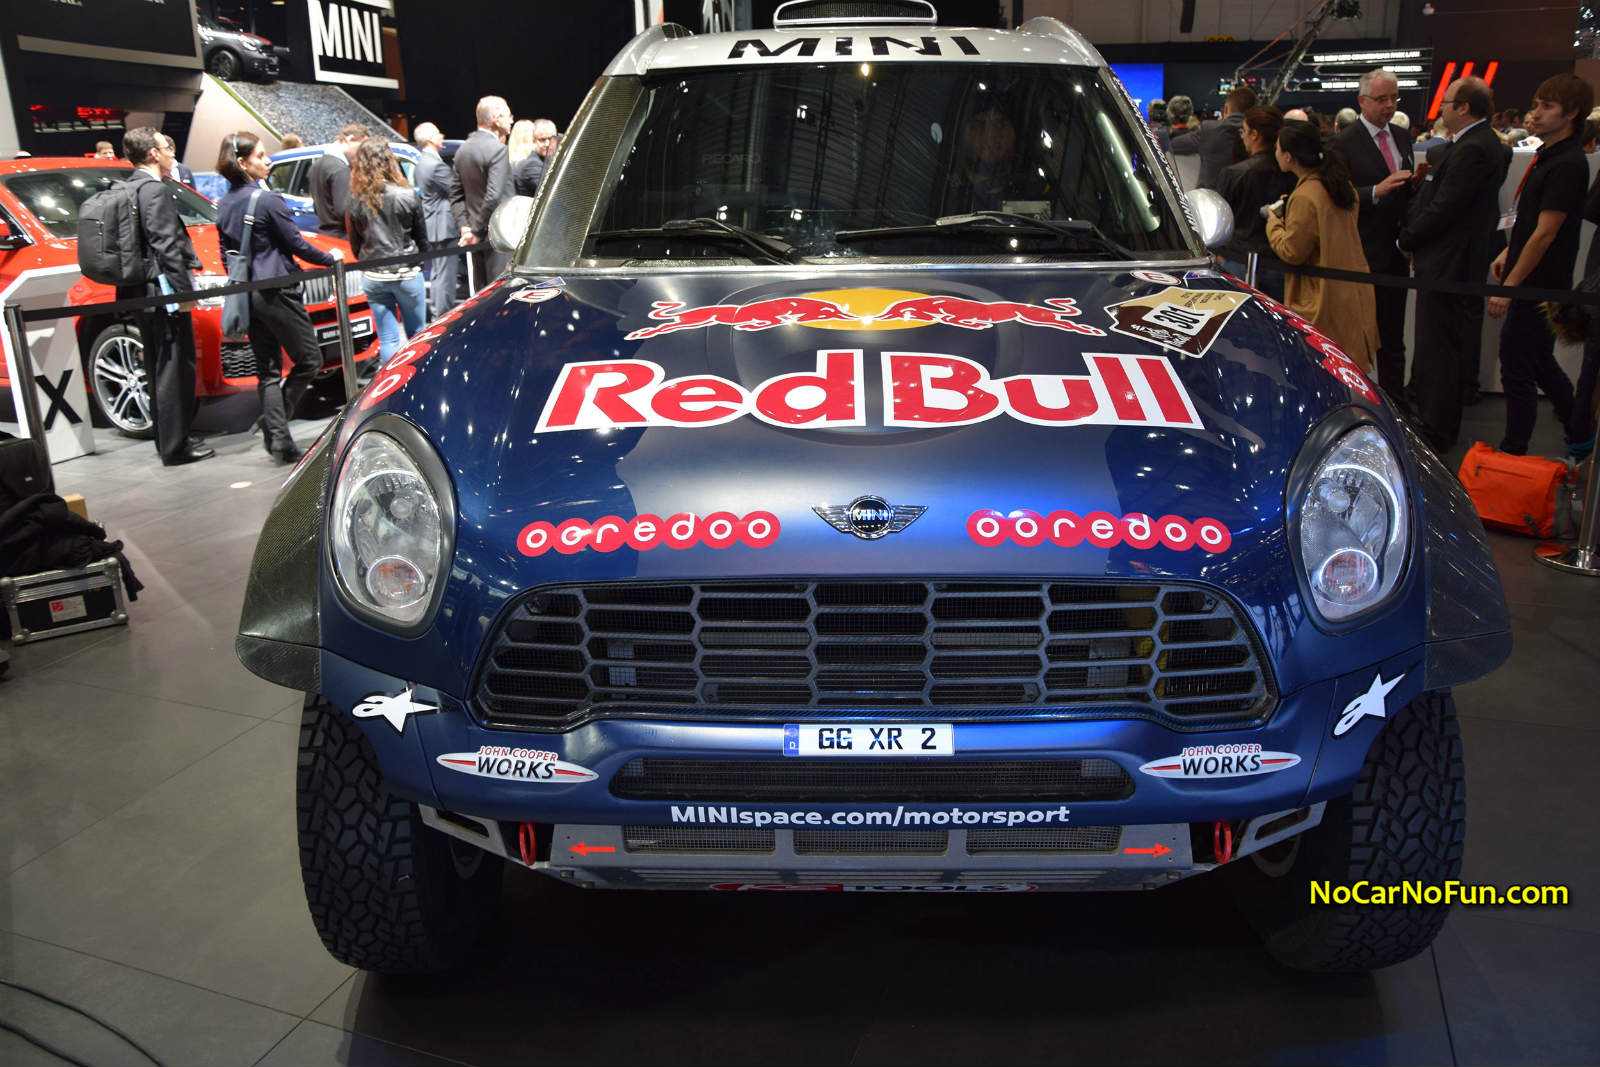 2015-MINI-Rally-Car-Dakar-Rally-05-2015-Geneva-Motor-Show - front ...